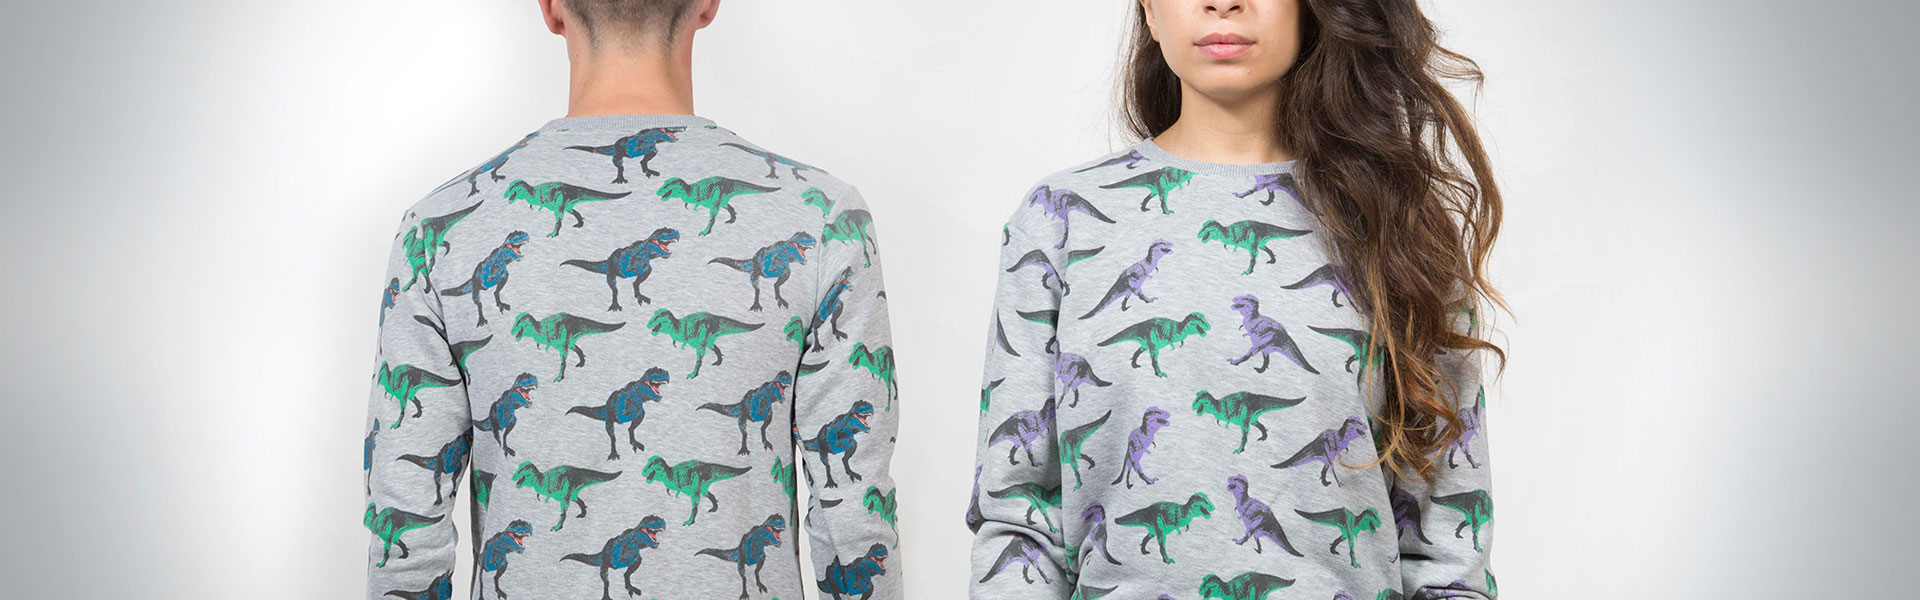 20% off Kitsch Dino clothing